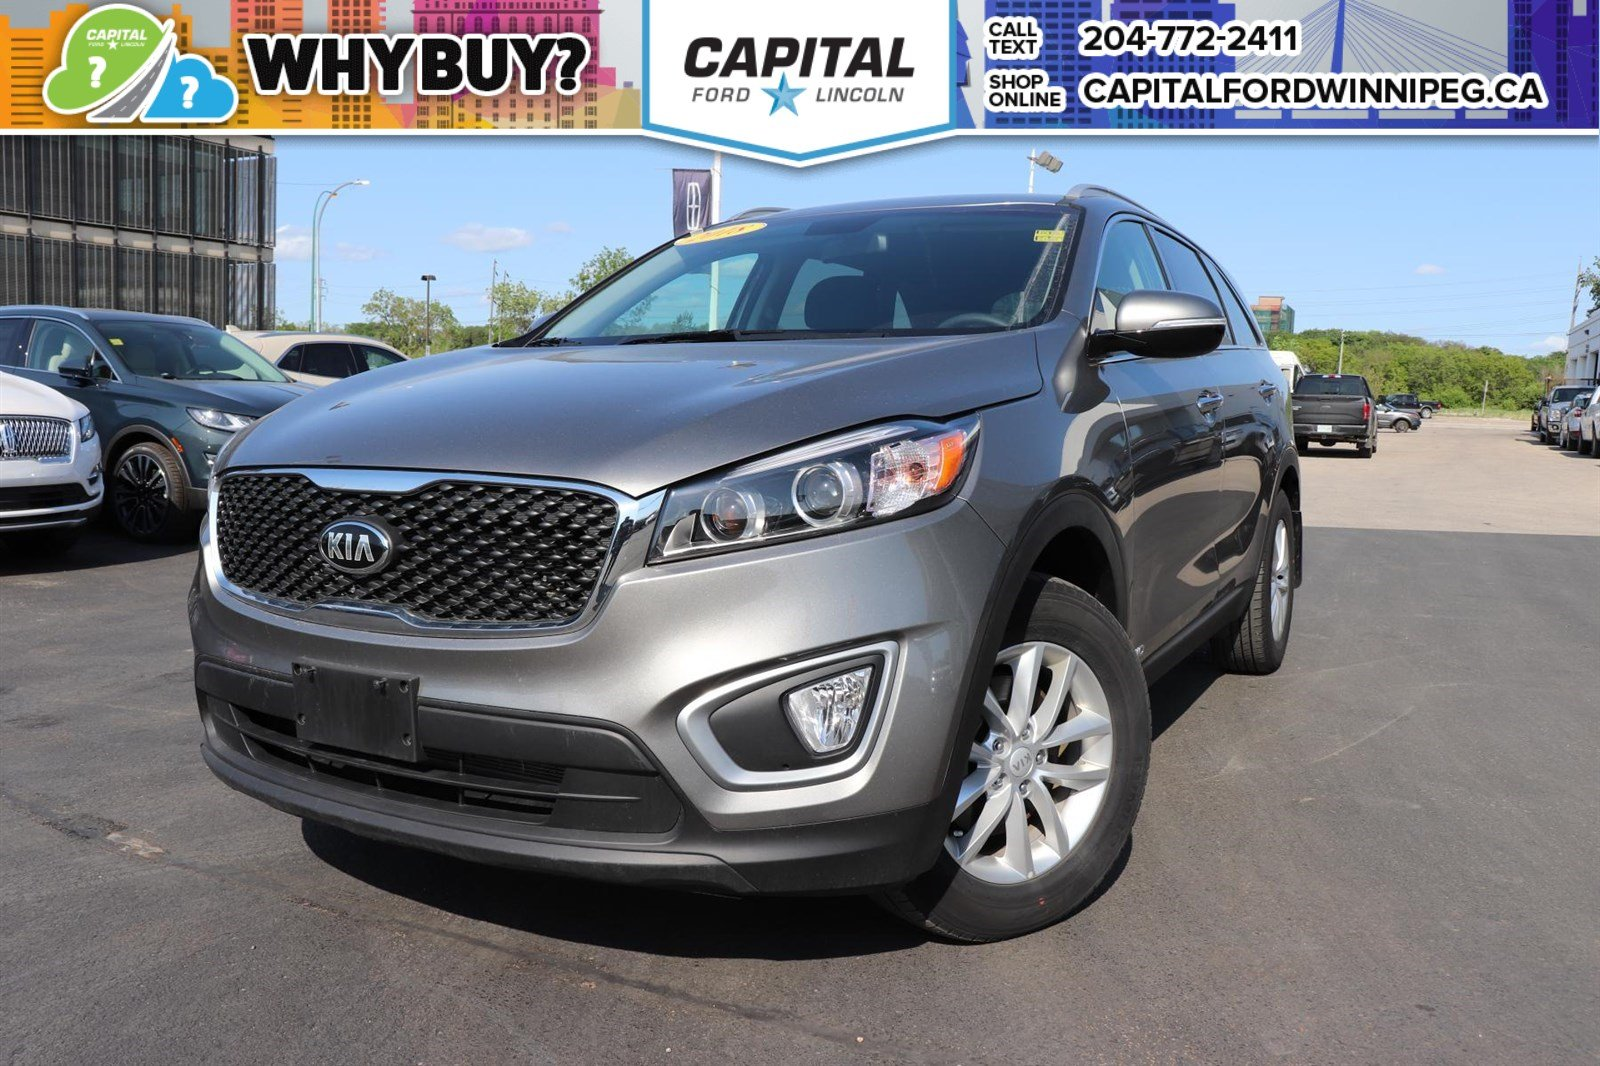 sorento new awd lx kia roseville inventory suv in sport utility